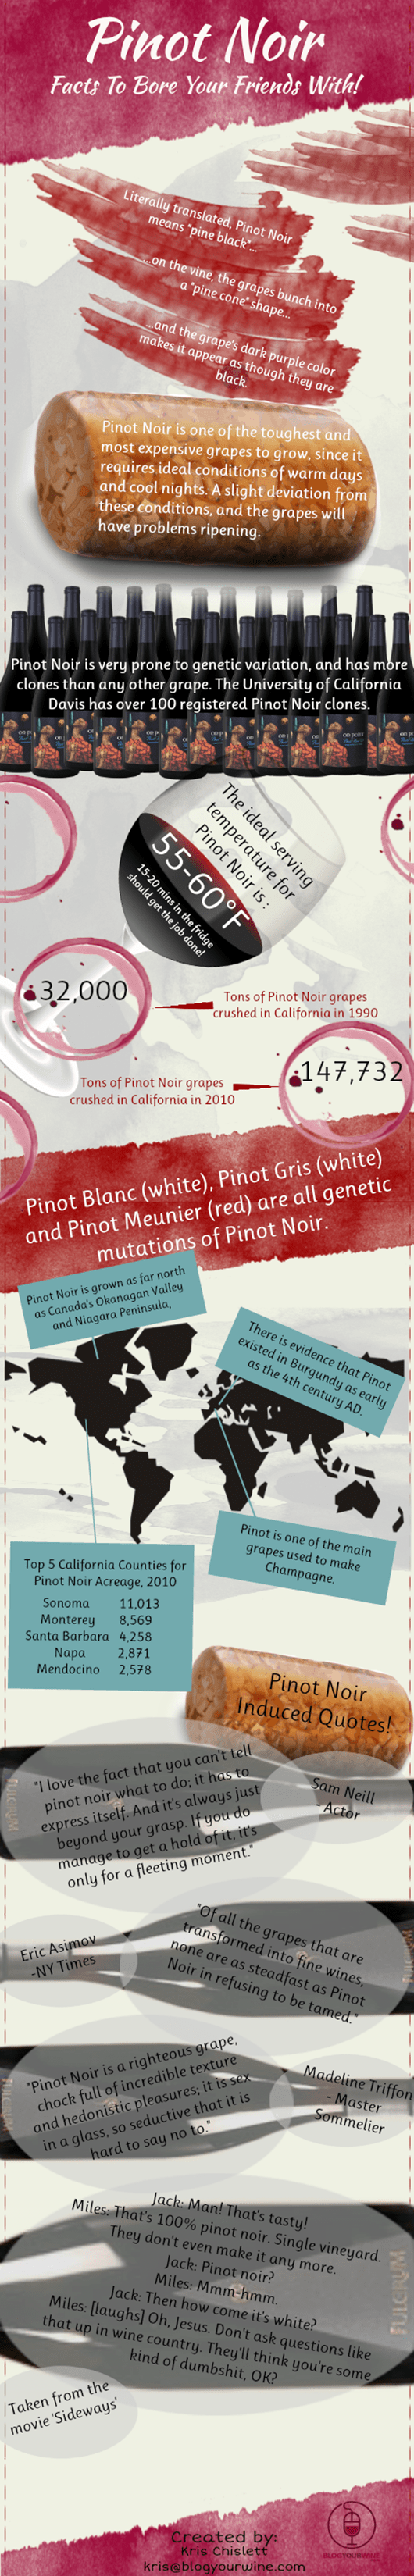 Pinot-Noir-Facts-Infographic